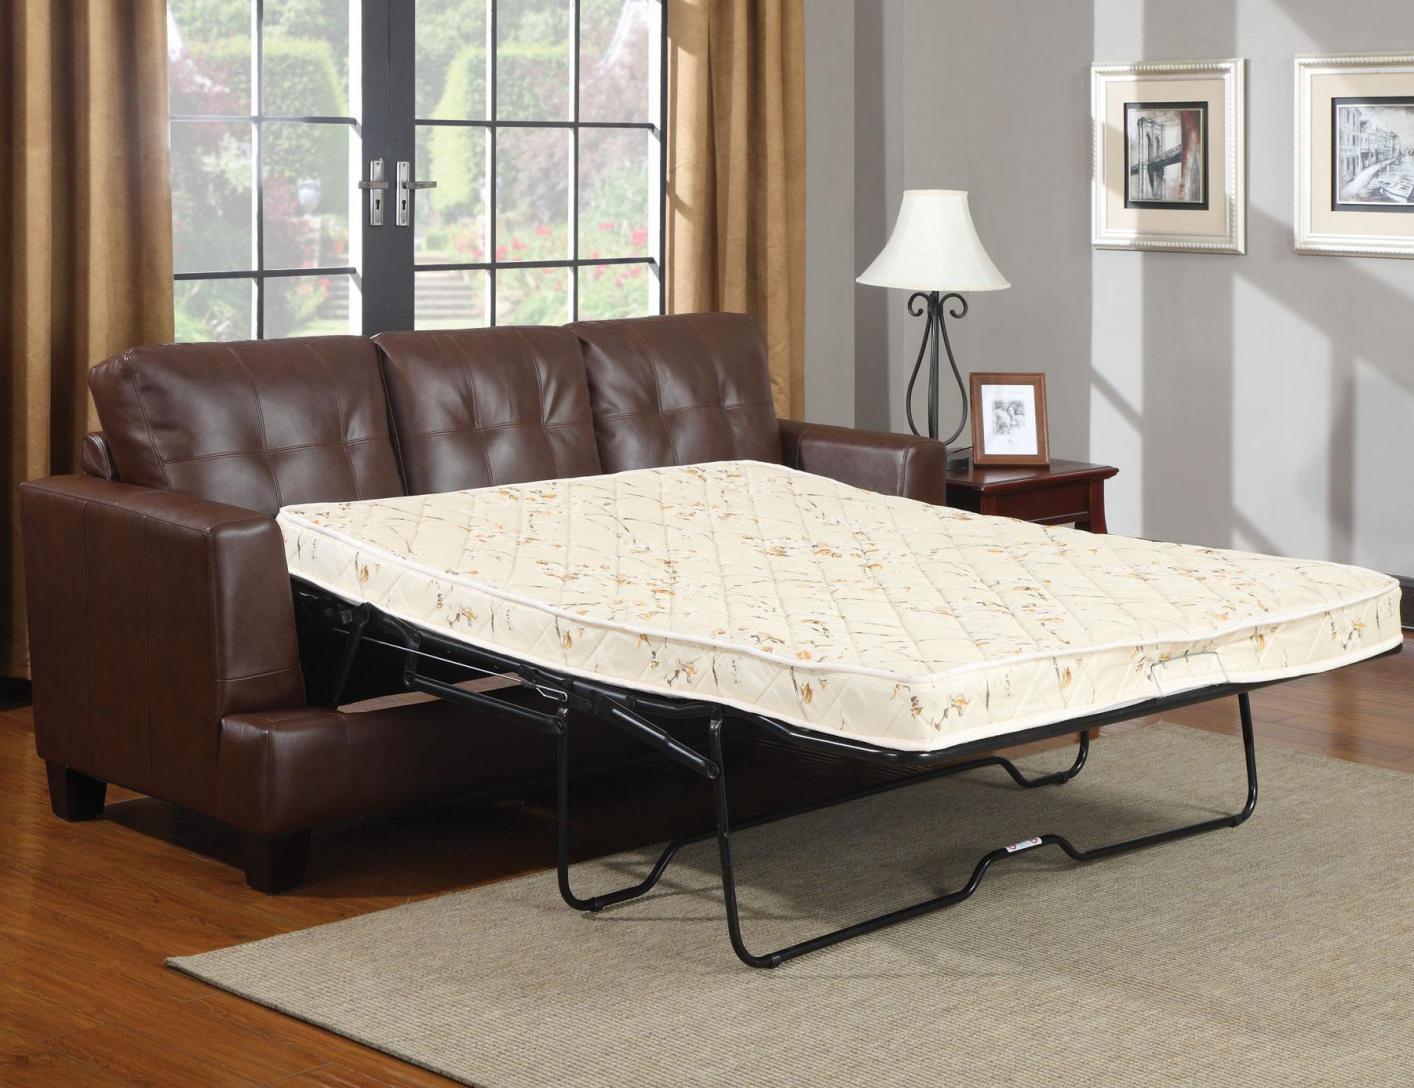 stealasofa reviews sheets for sofa beds uk brown leather bed steal a furniture outlet los